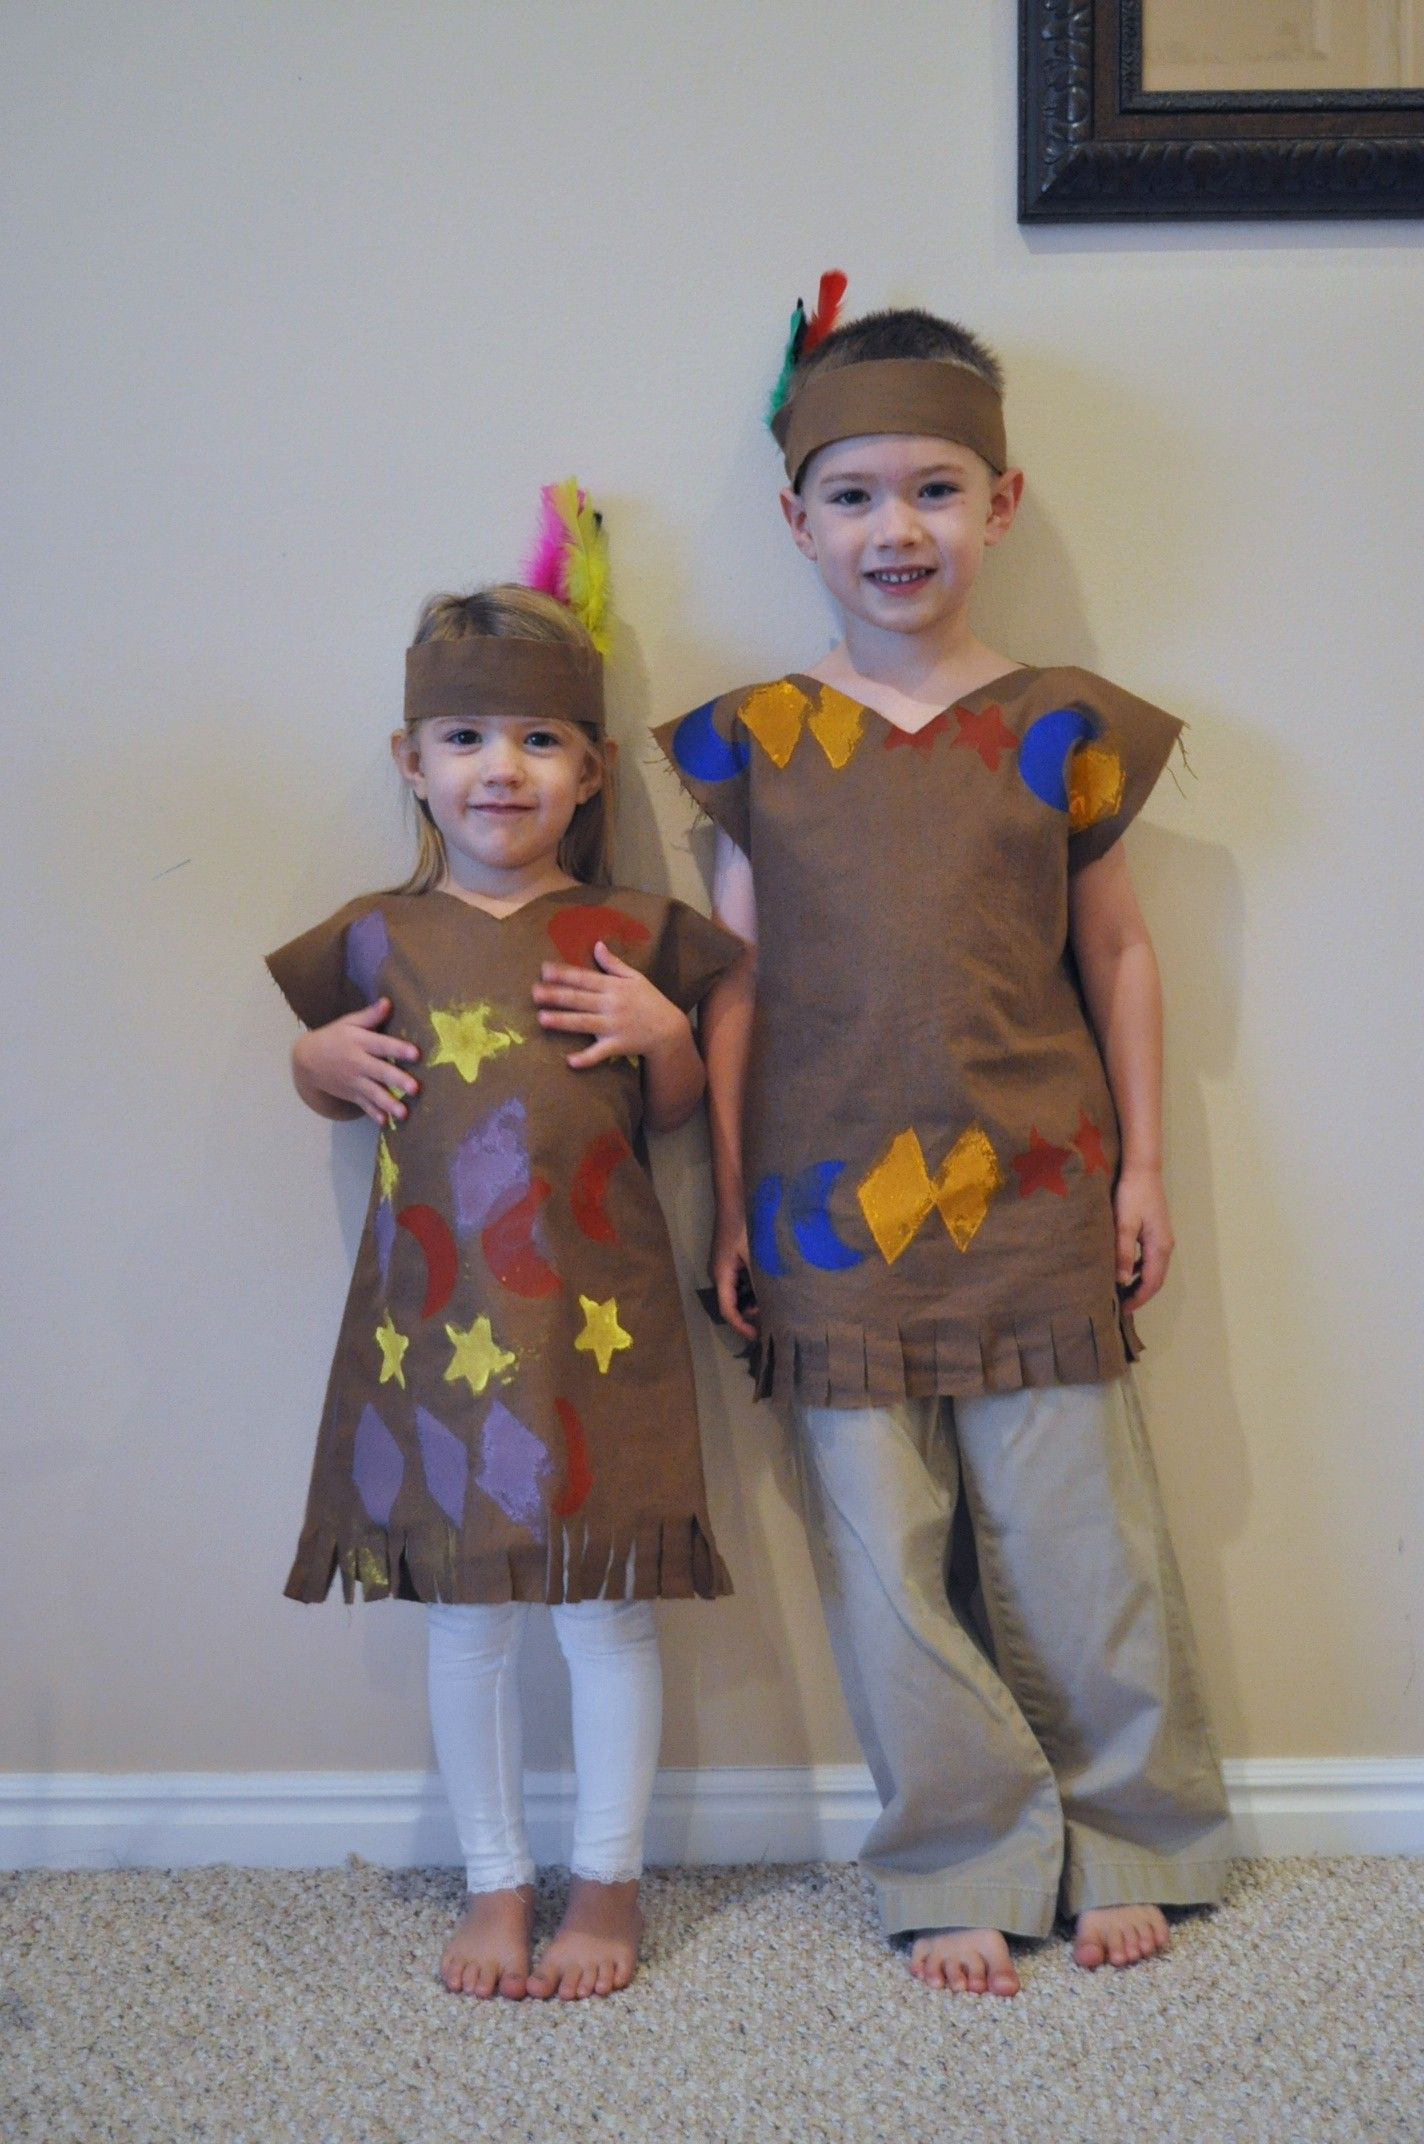 Simple homemade native american costume rally jasper for Easy homemade costume ideas for kids